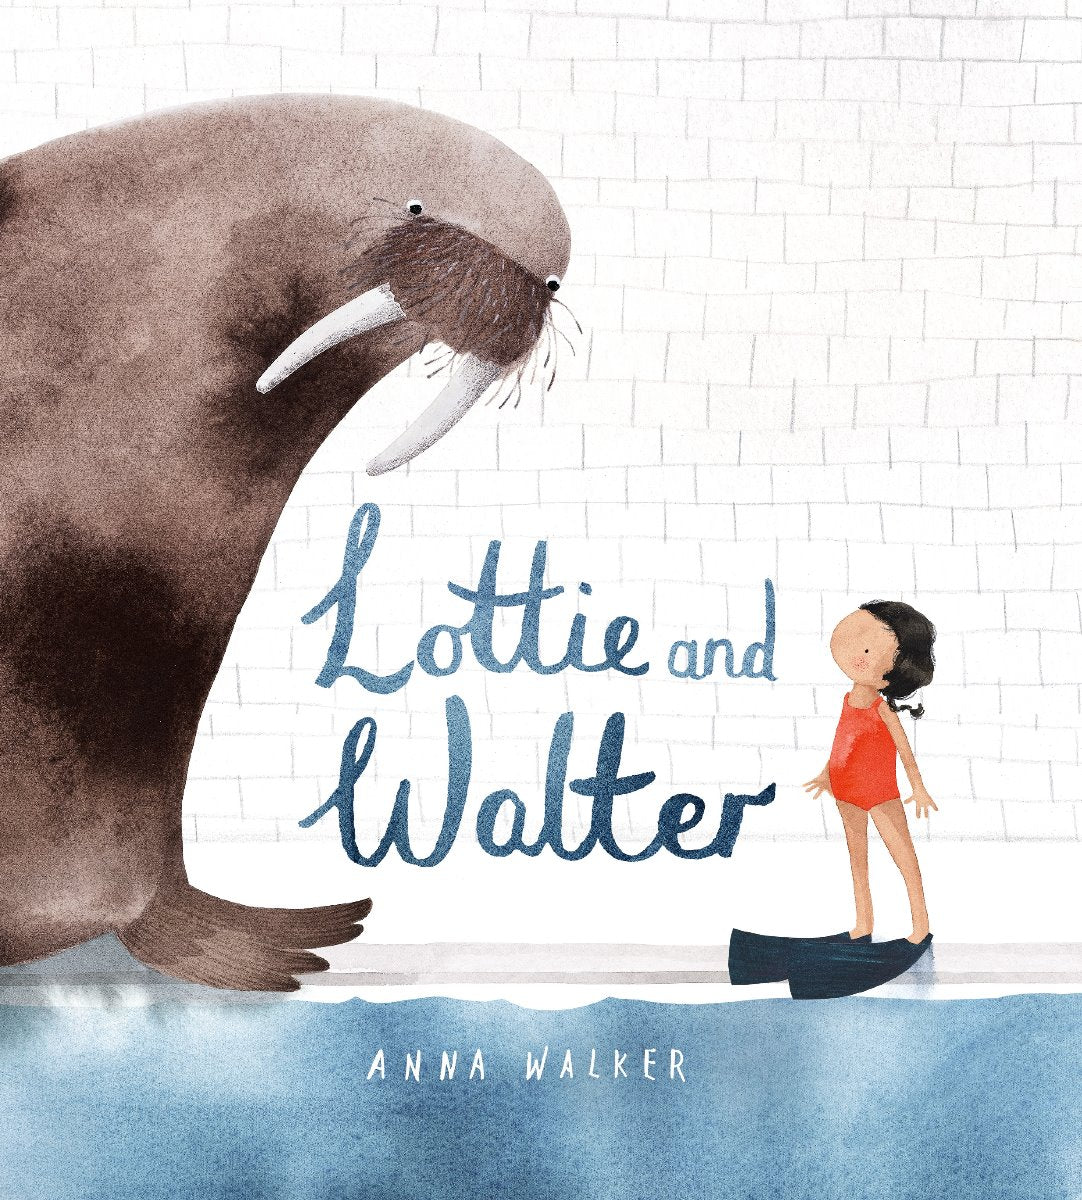 Lottie and Walter Hardback Book by Anna Walker cover